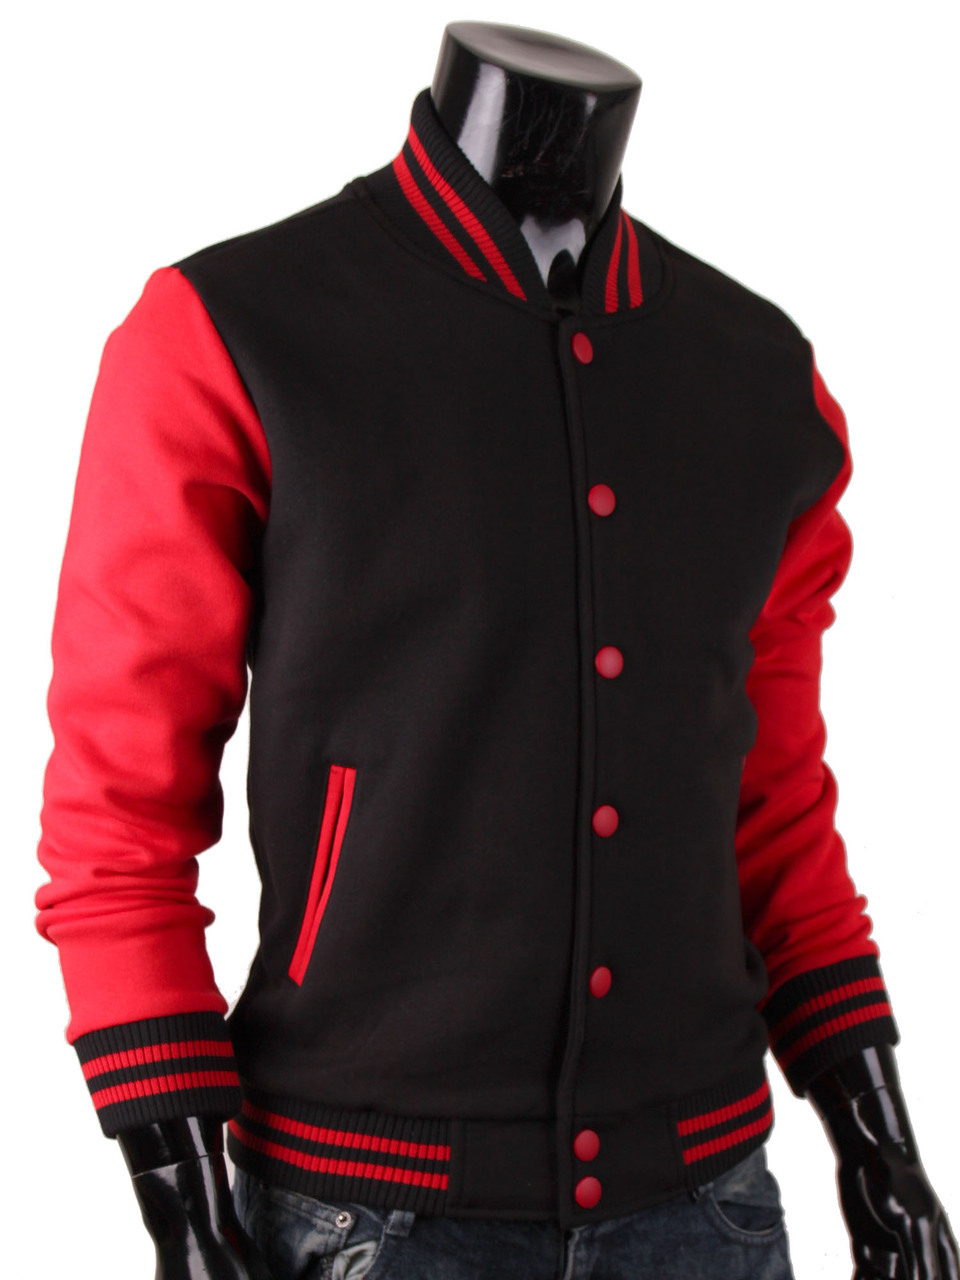 Men's Sweatshirt Baseball Jacket Varsity Jacket Cotton Jacket ...